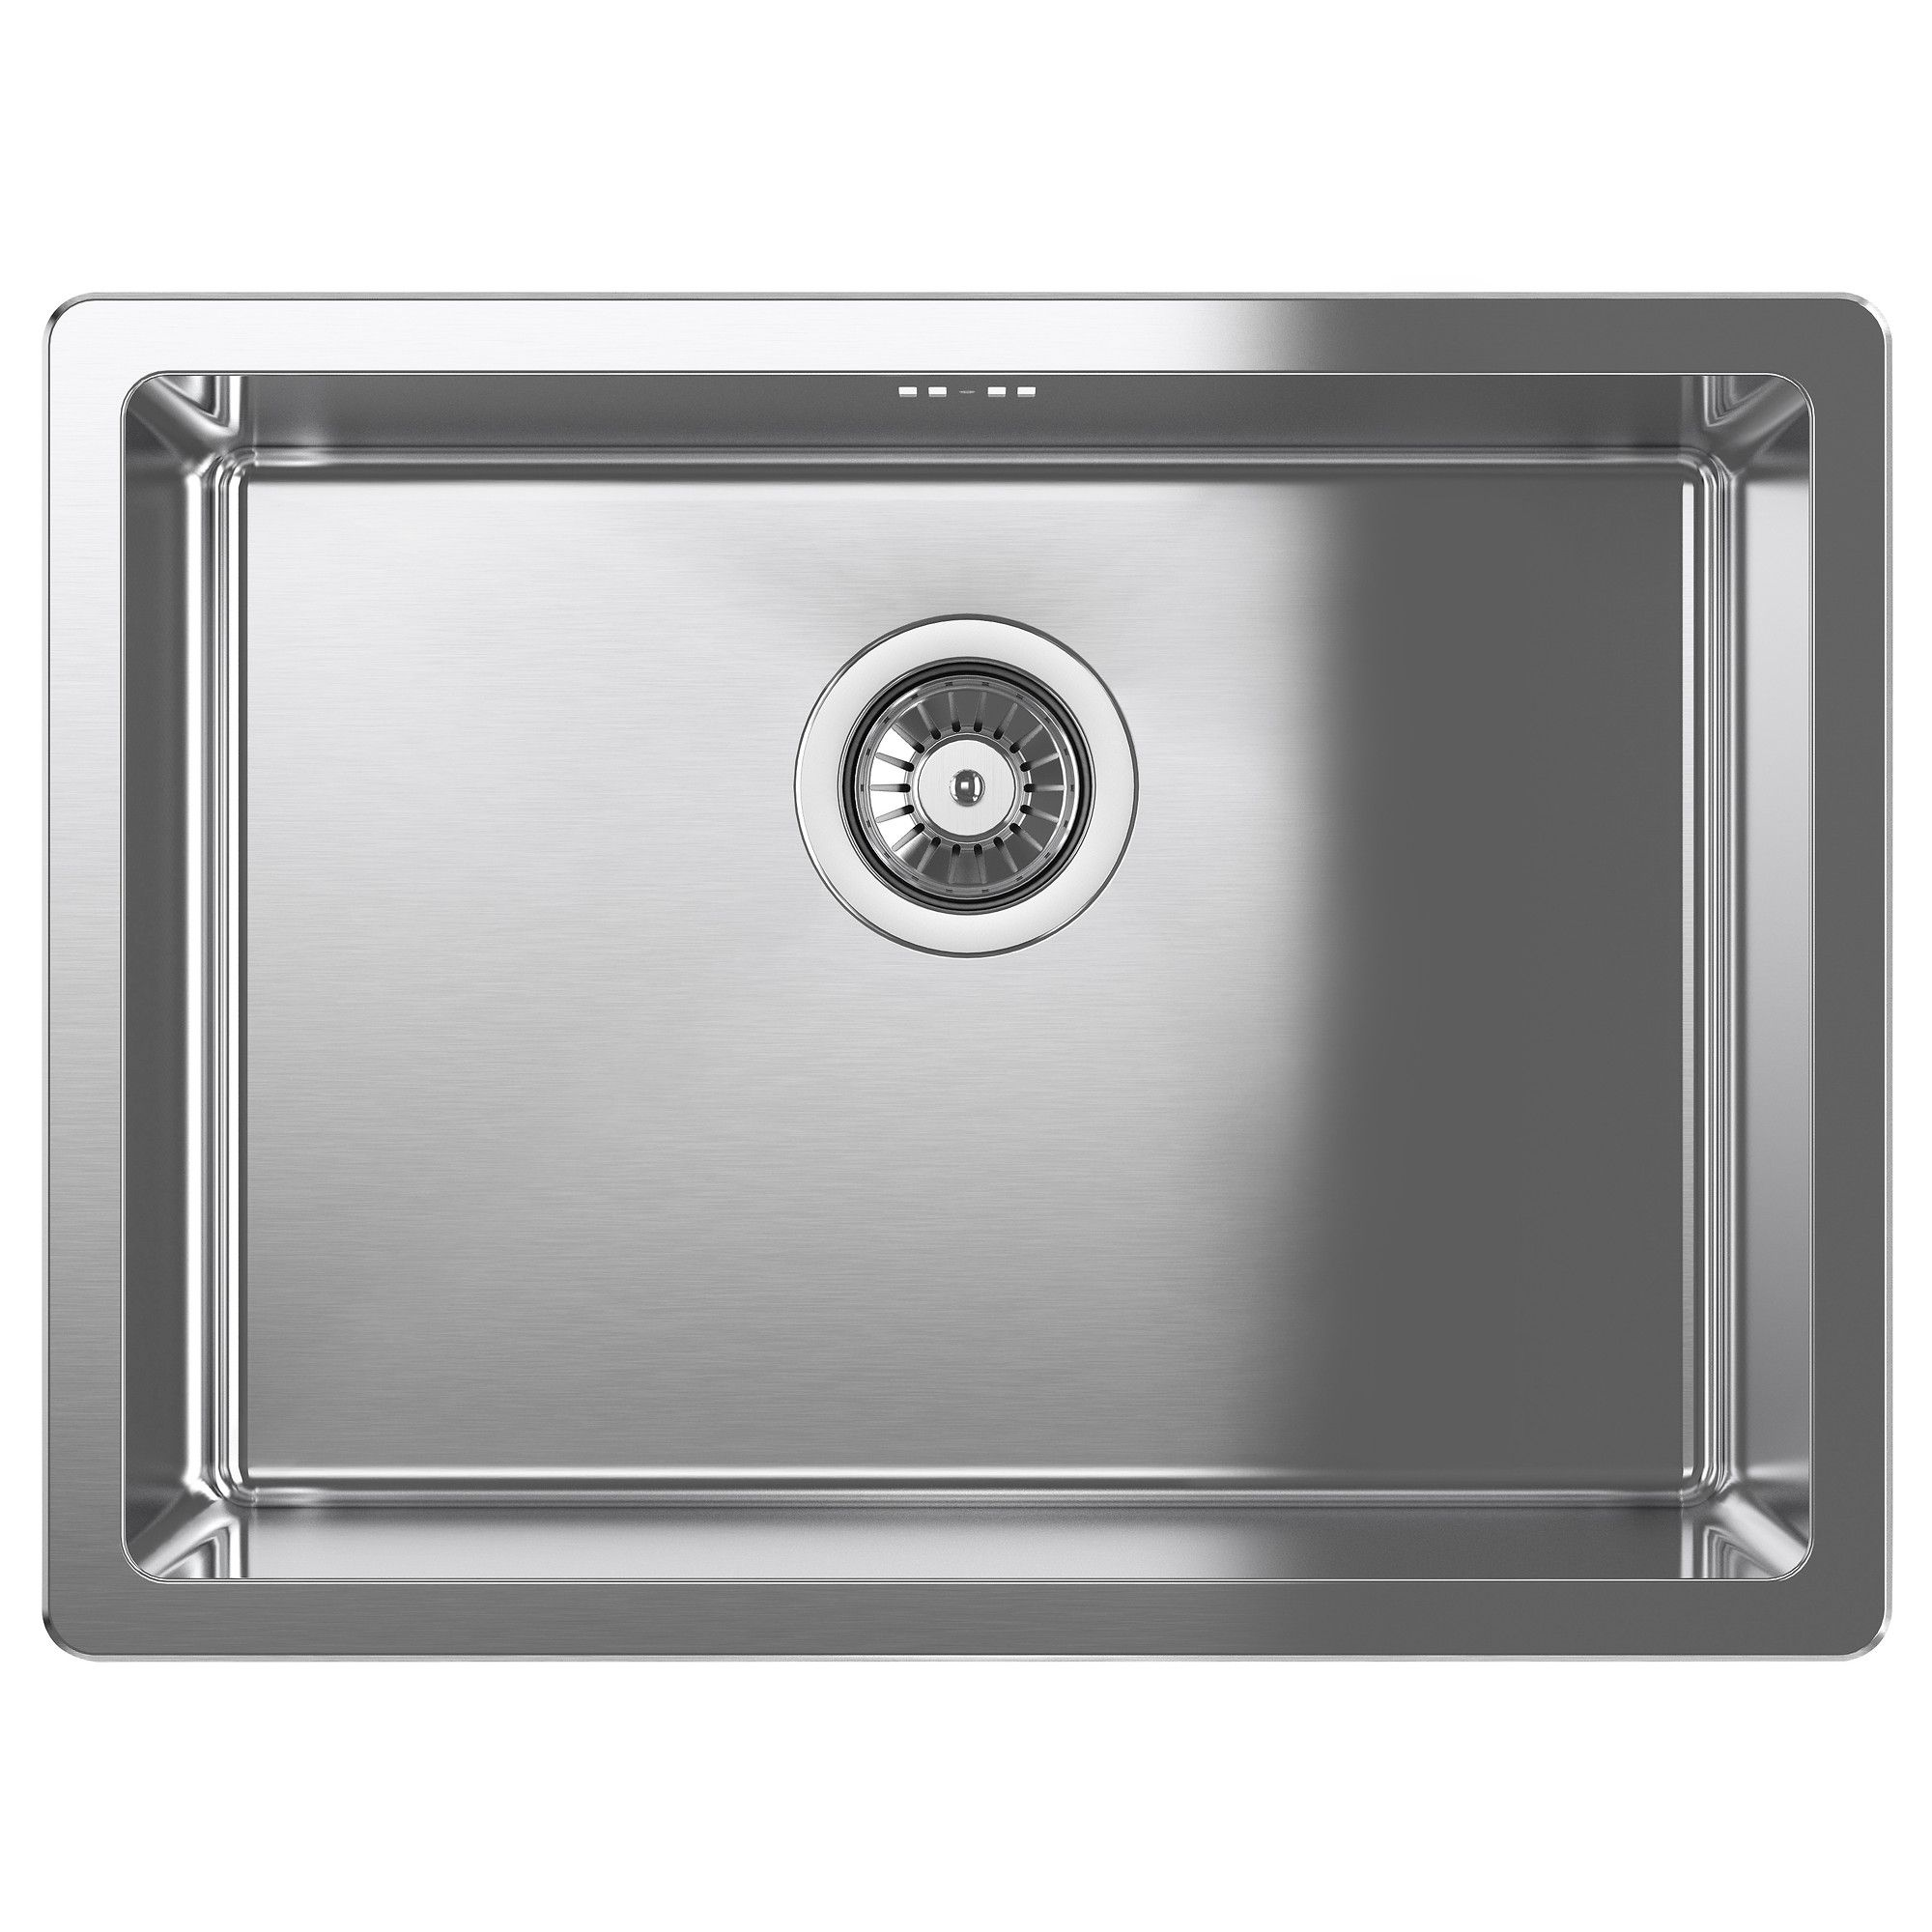 BREDSKÄR Single Bowl Inset Sink IKEA Sink In Stainless Steel, A Hygienic,  Strong And Durable Material Thatu0026apos;